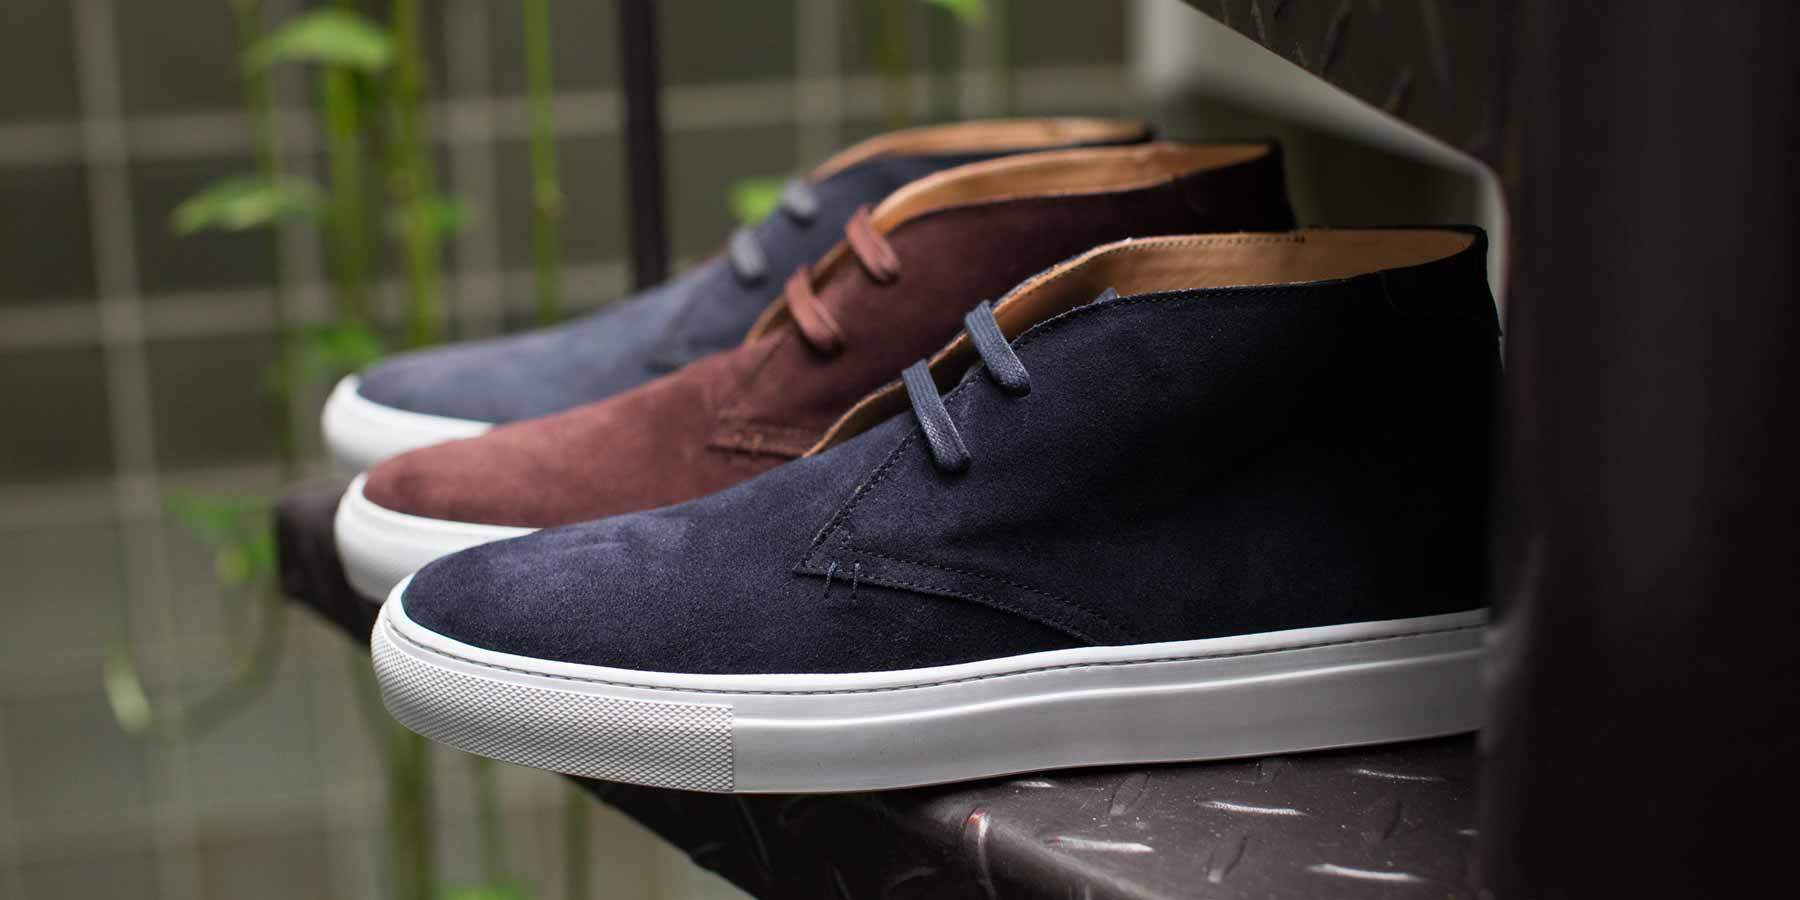 Buy USA Greats Royale Chukka Shoes International Shipping